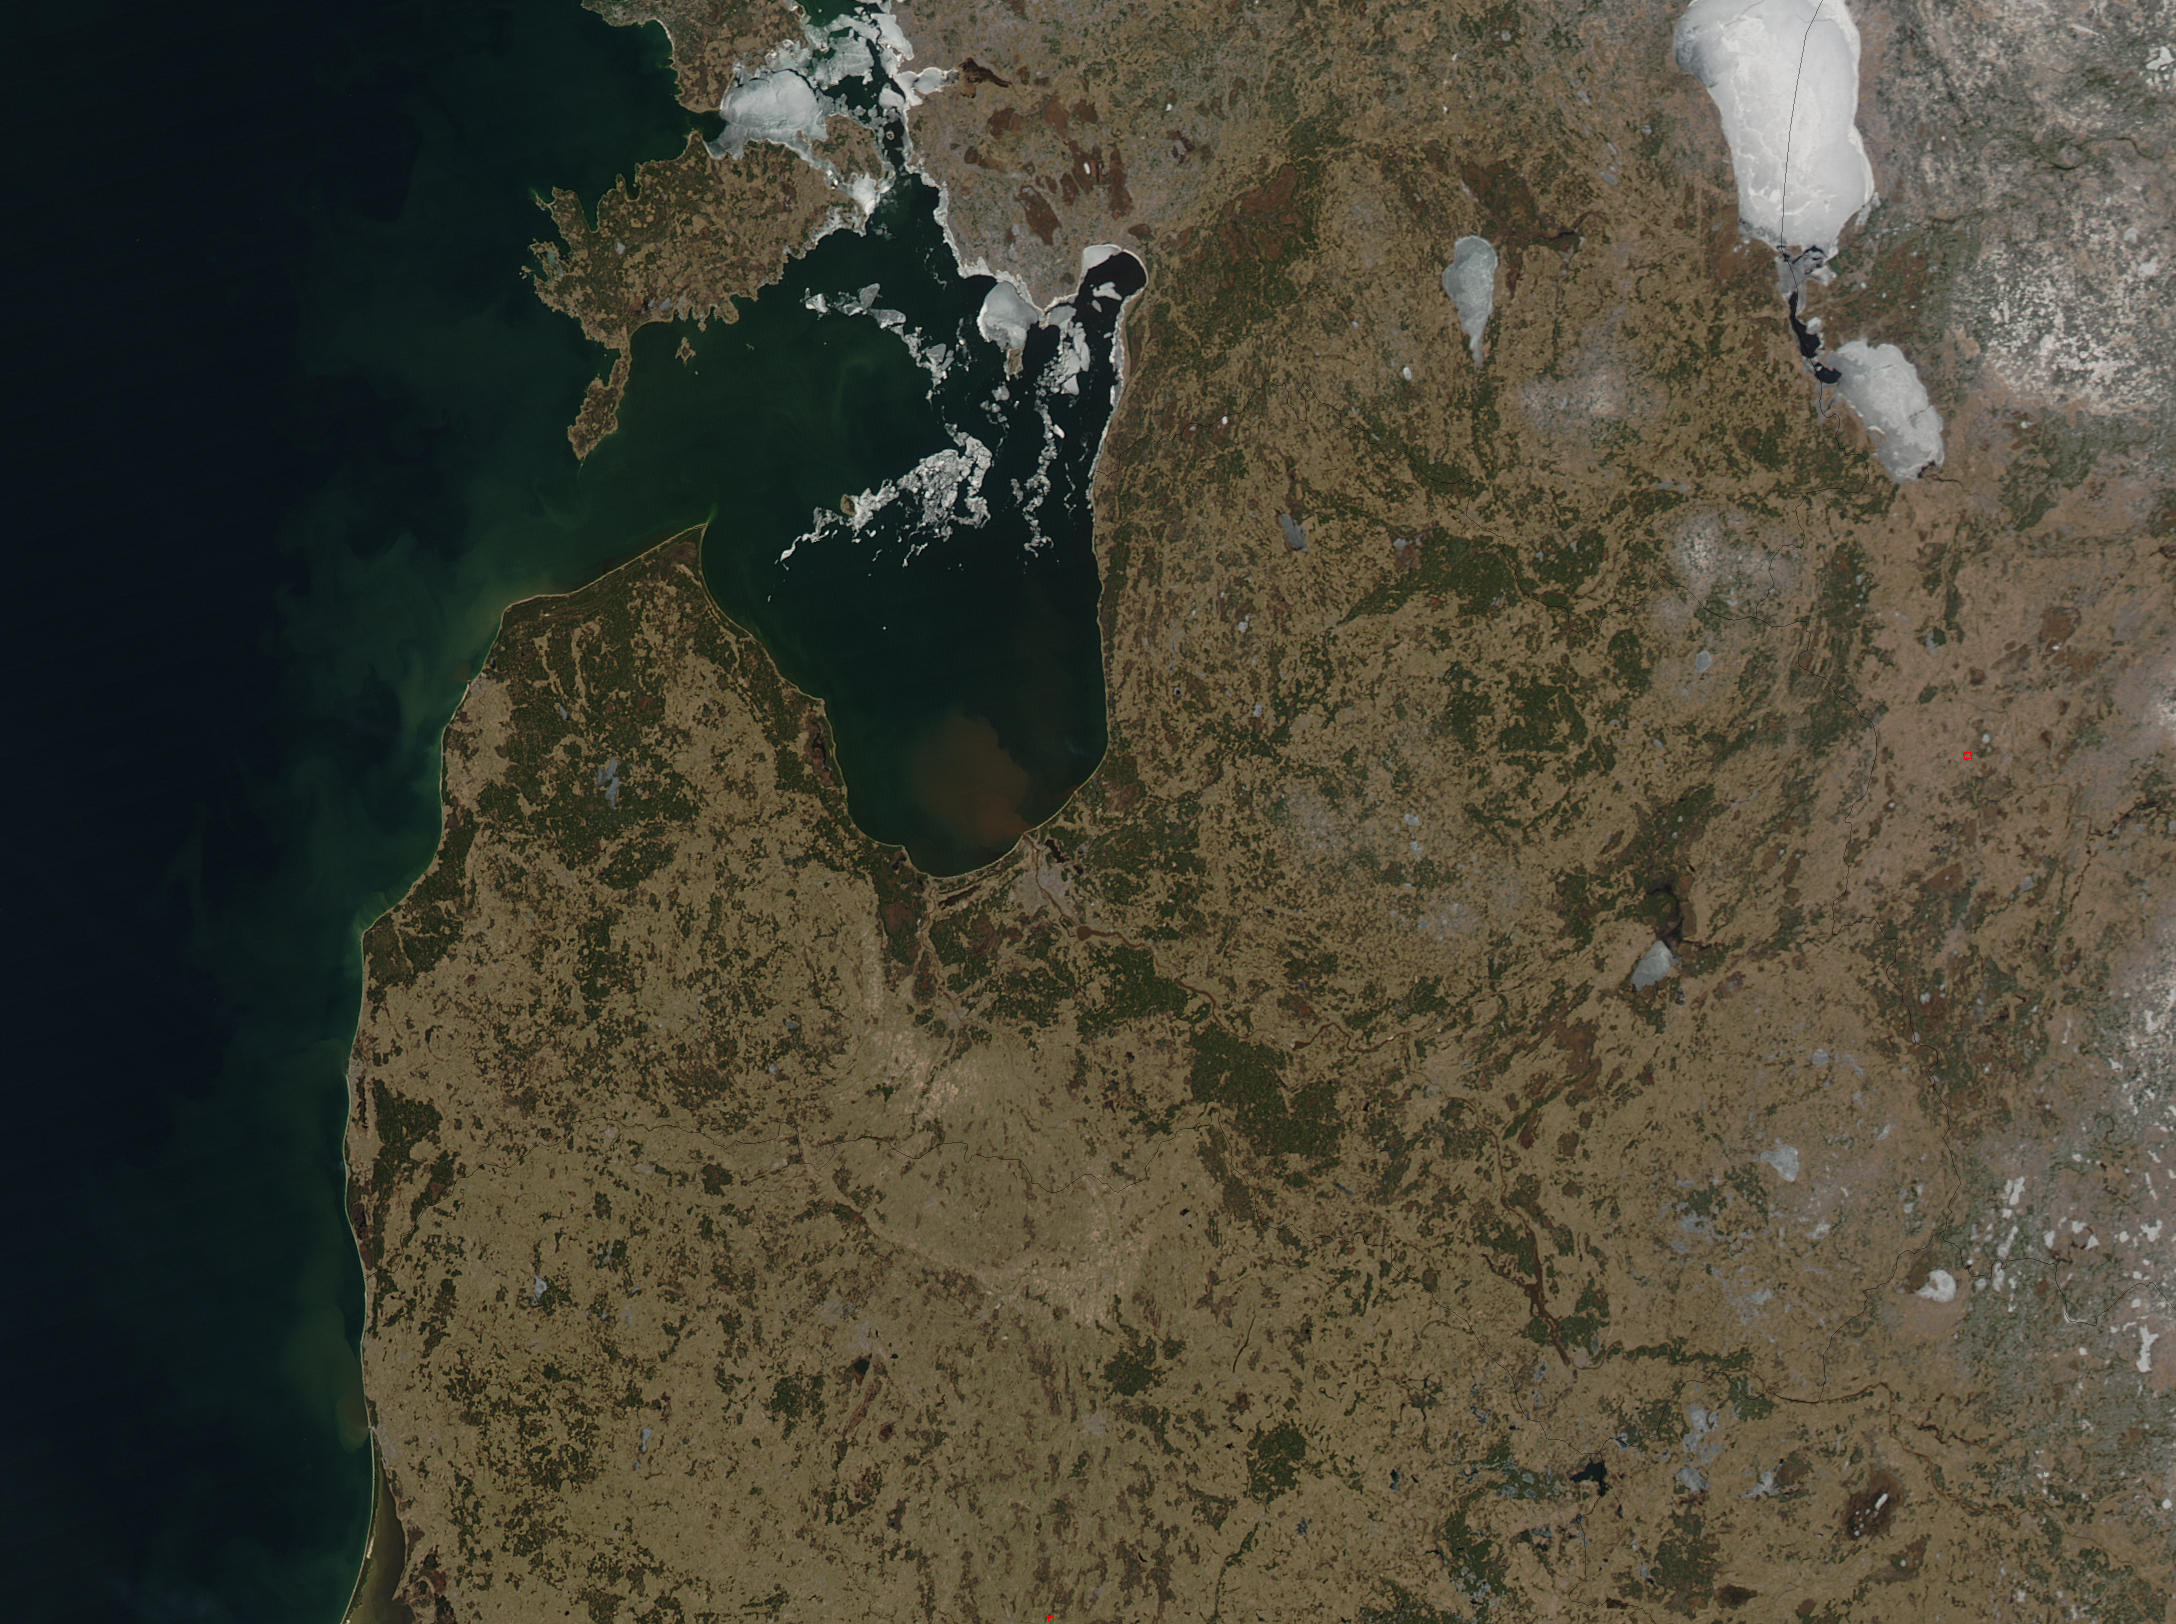 FileLv From Satellitejpg Wikimedia Commons - Photos from satellite